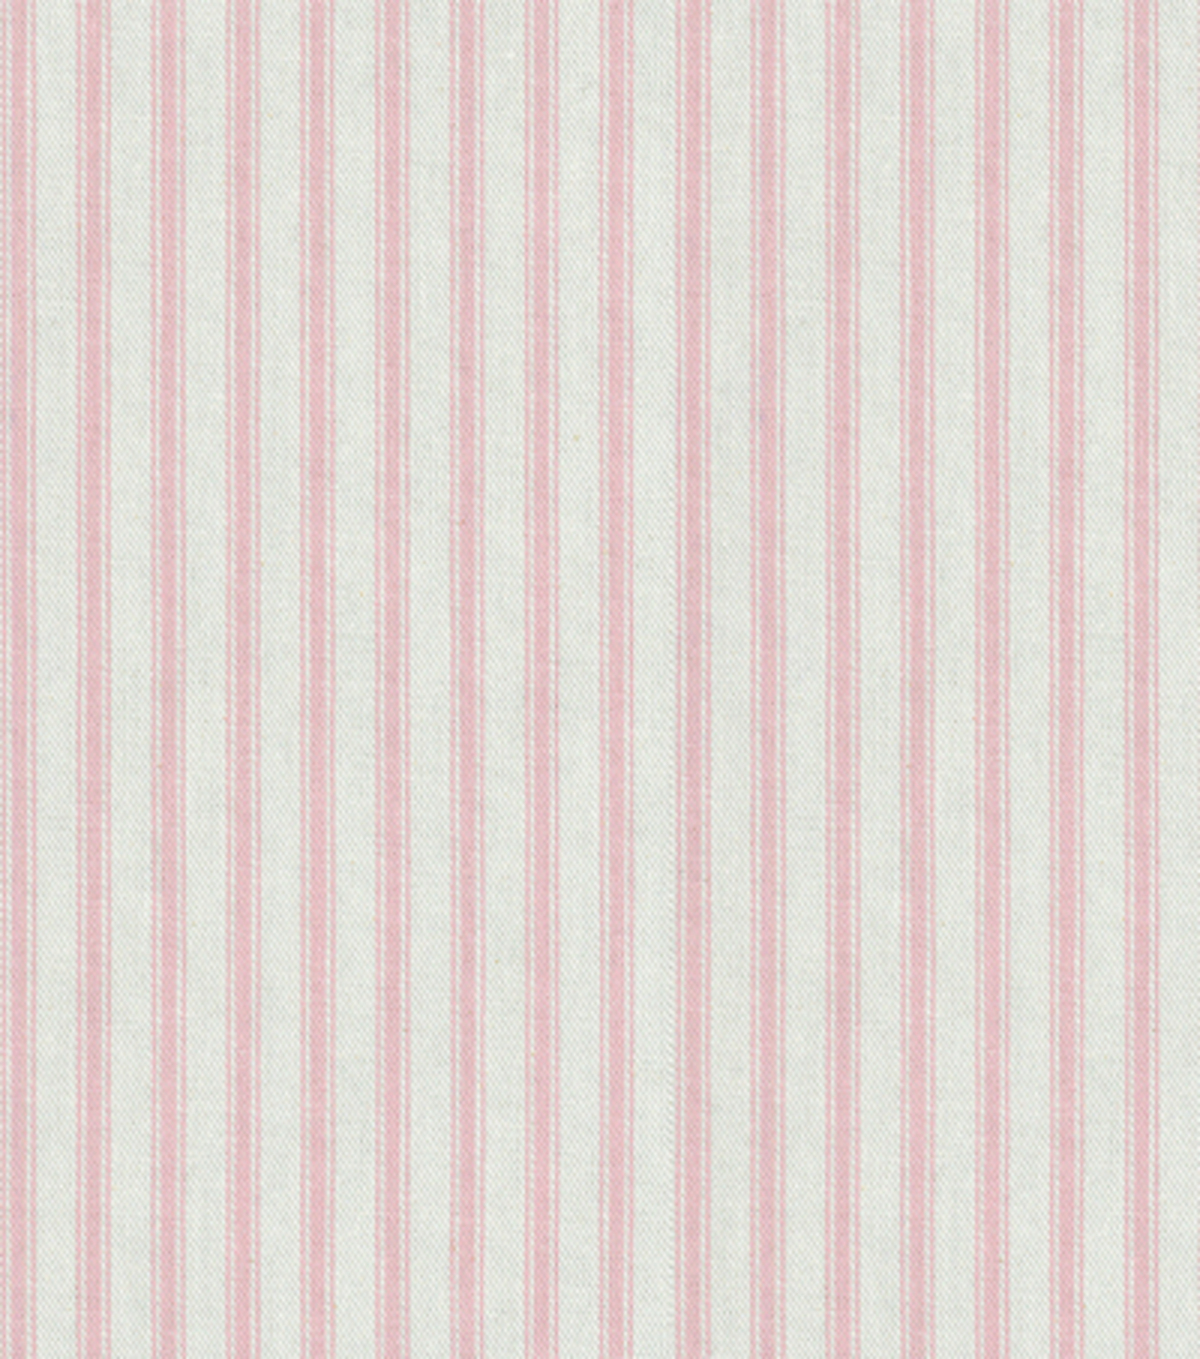 Home Decor 8\u0022x8\u0022 Fabric Swatch-Covington Woven Ticking